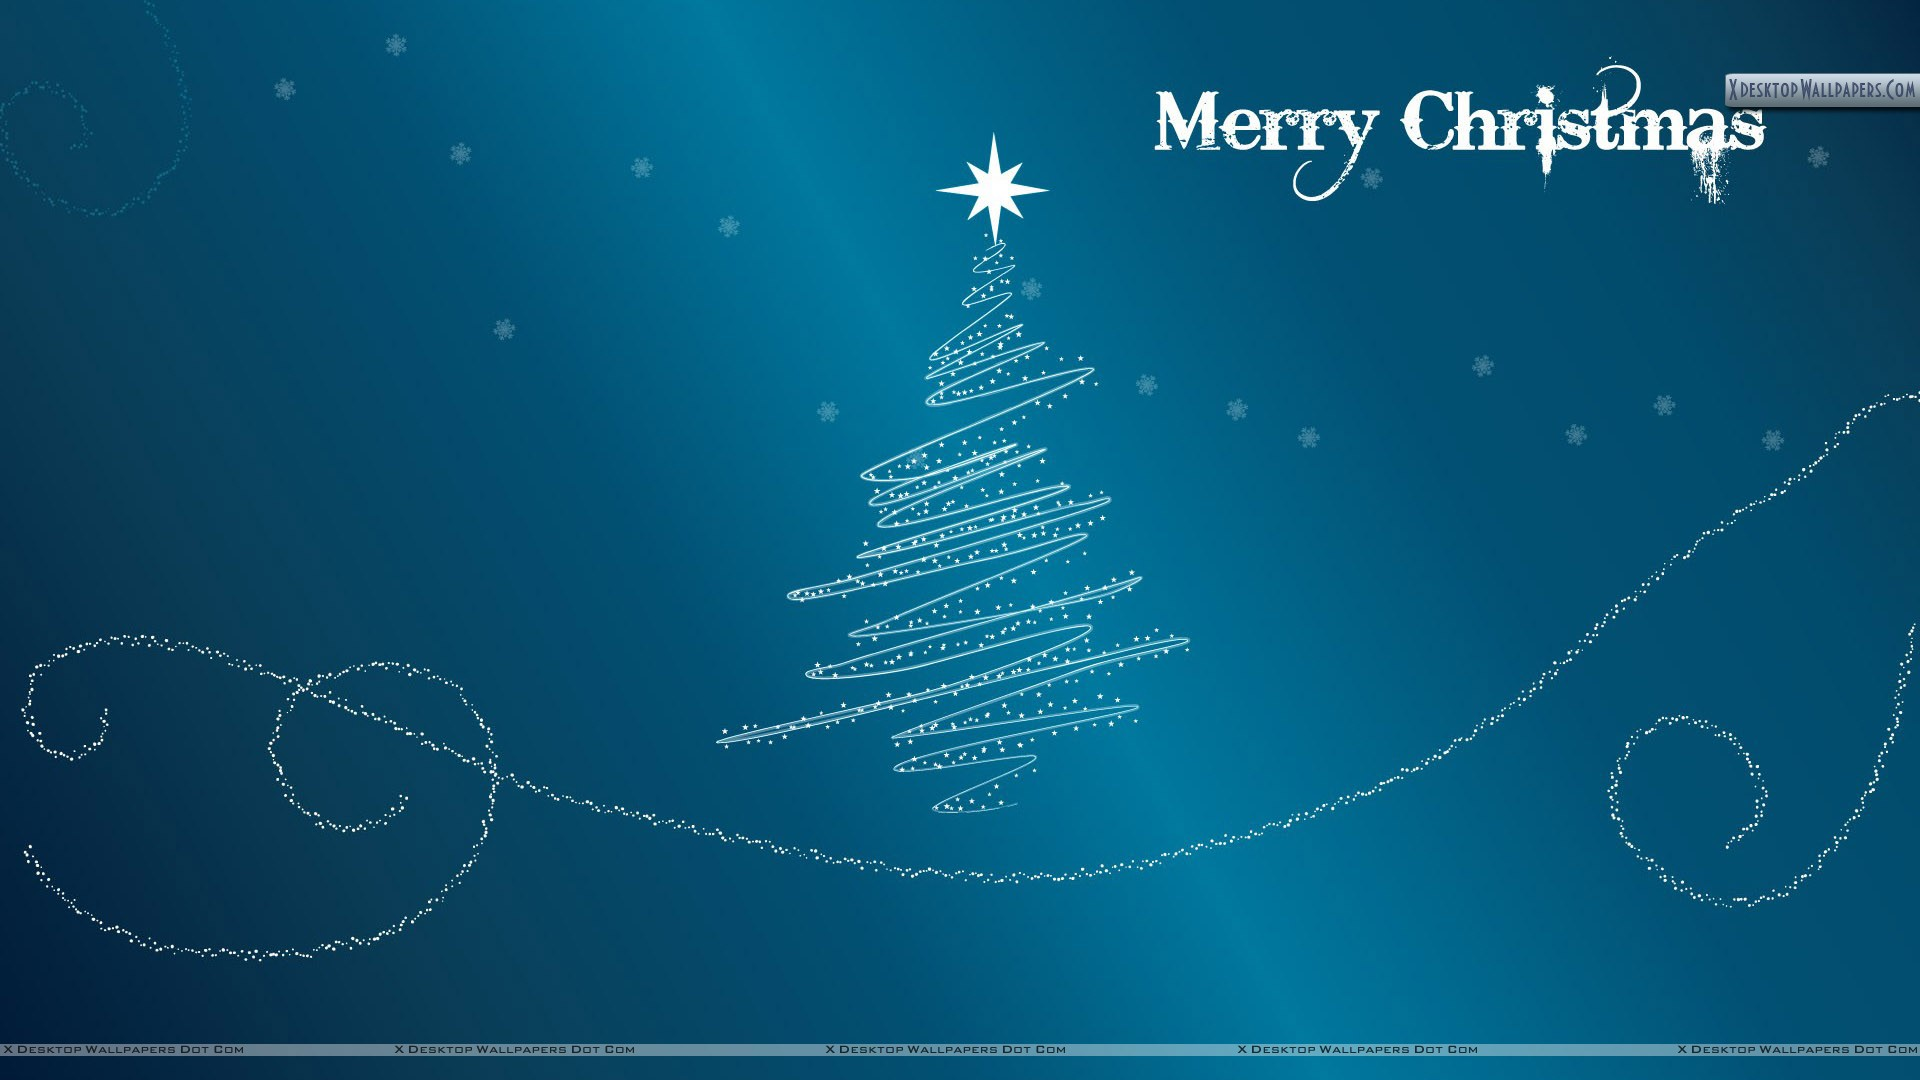 you are viewing wallpaper titled merry christmas with blue background - Merry Christmas Background